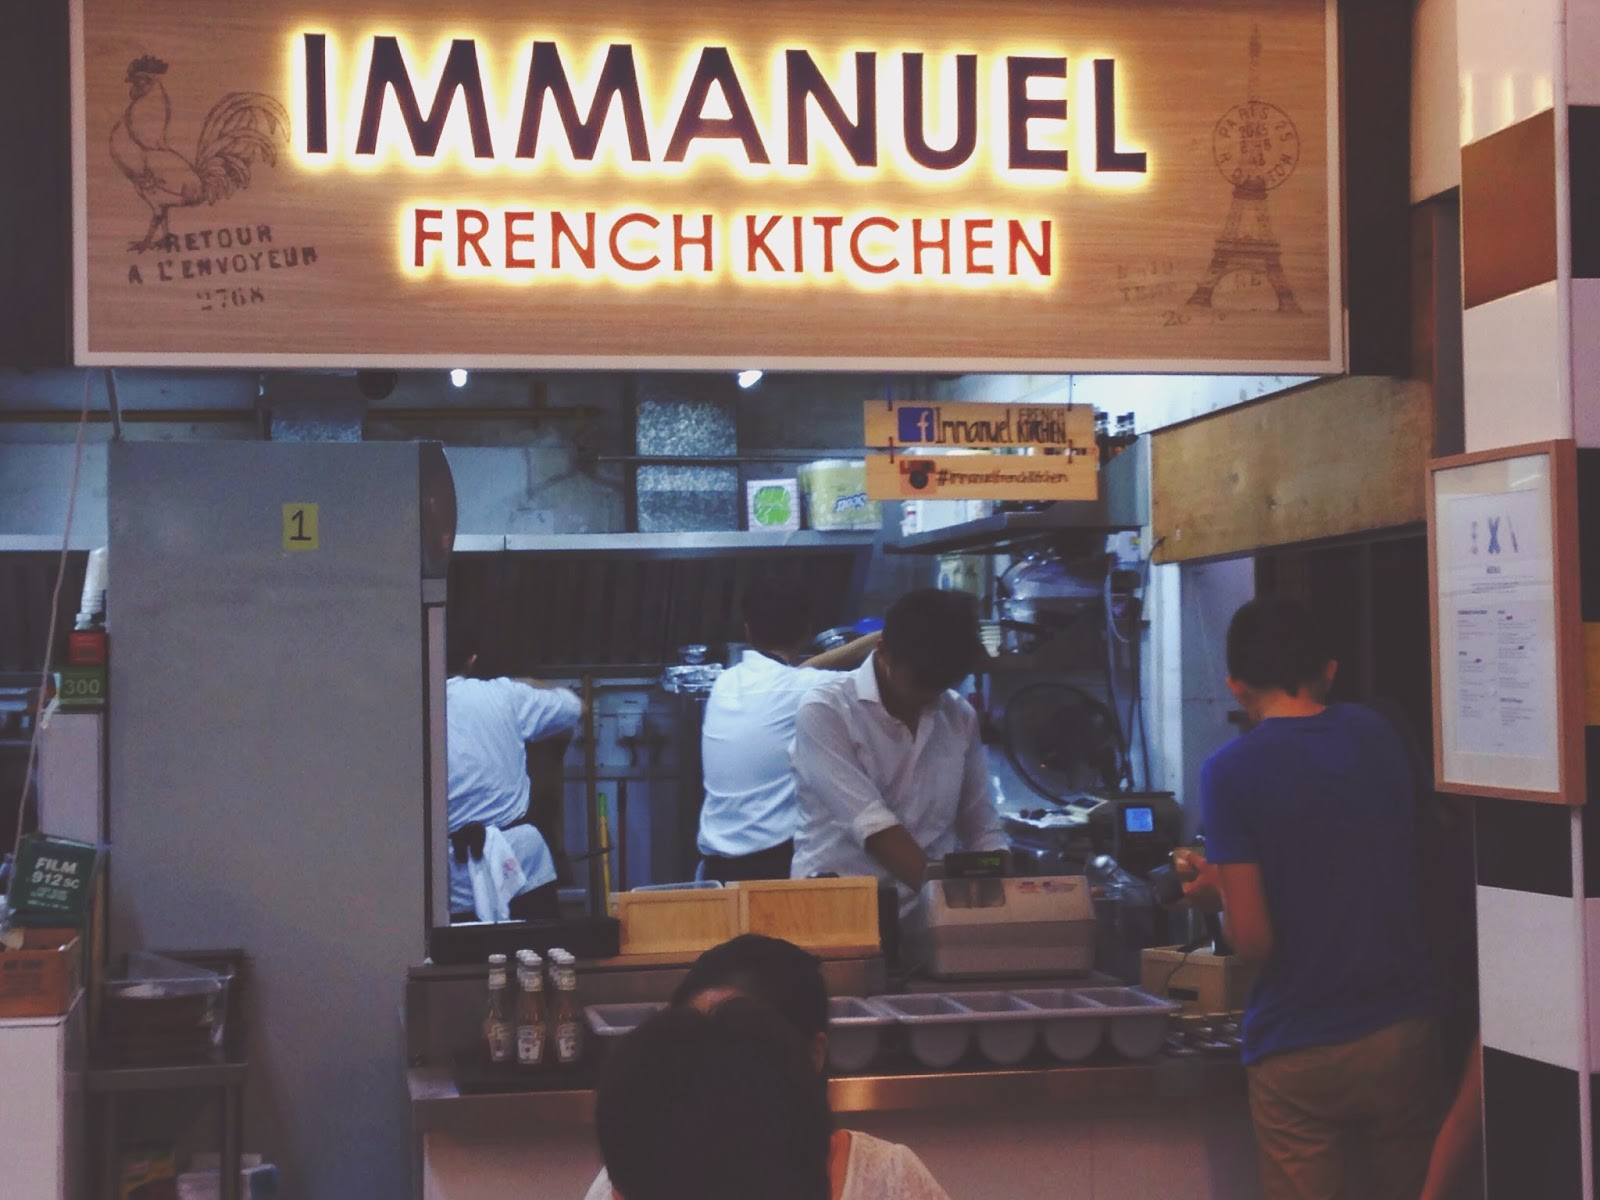 Salute Immanuel French KItchen Bukit Merah Lane 1